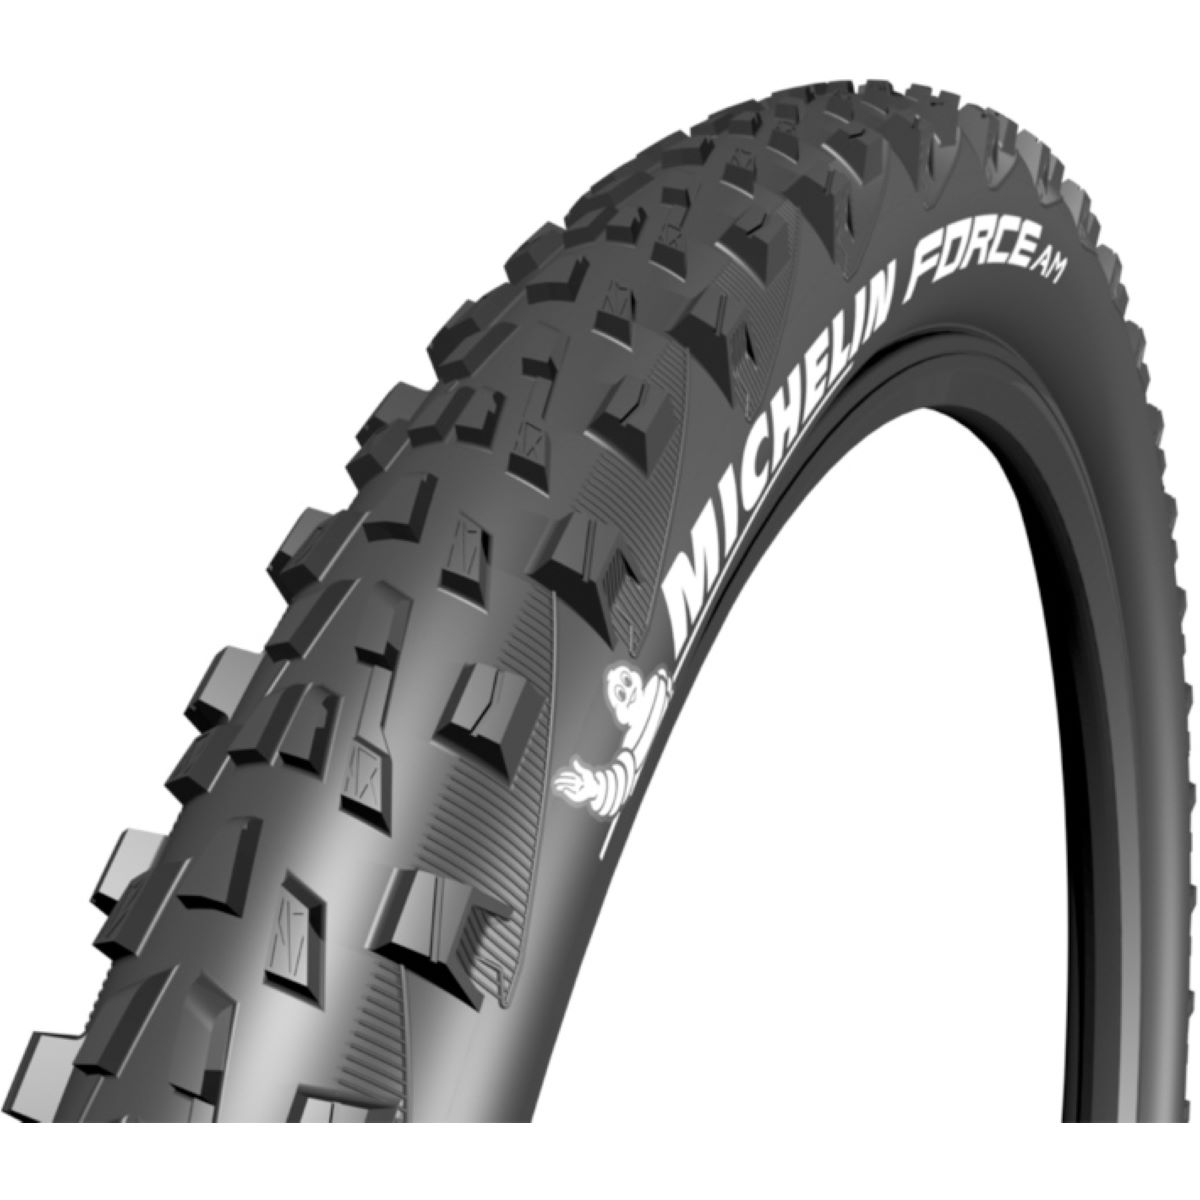 Pneu VTT Michelin Force AM Competition - 2.35' 27.5' Noir Pneus